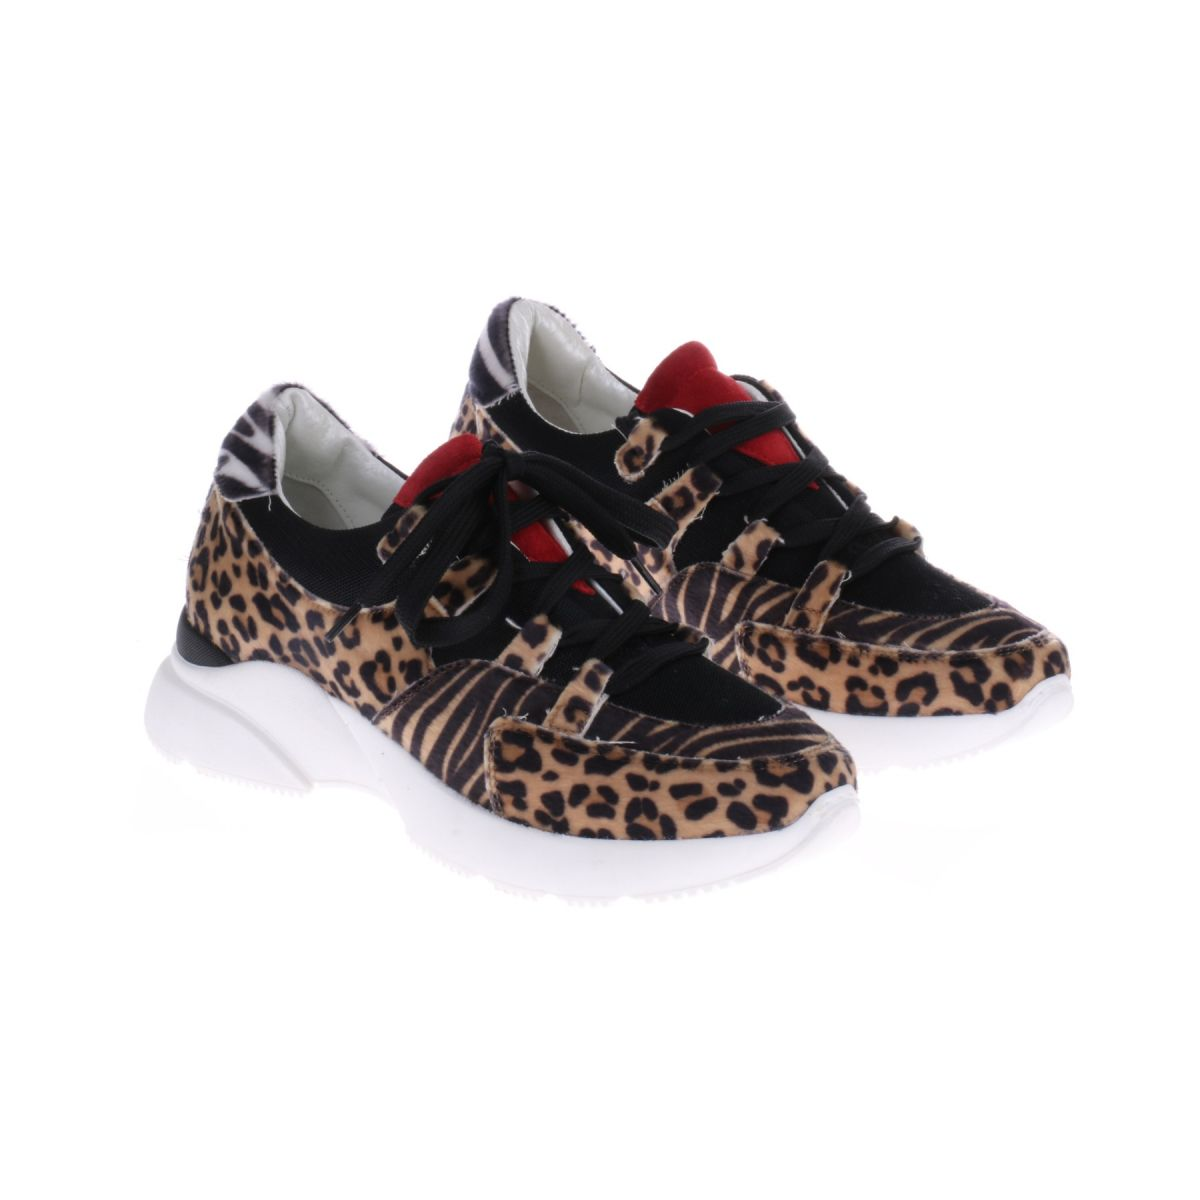 HIP Donna D1891 Sneaker Panter- En Zebraprint